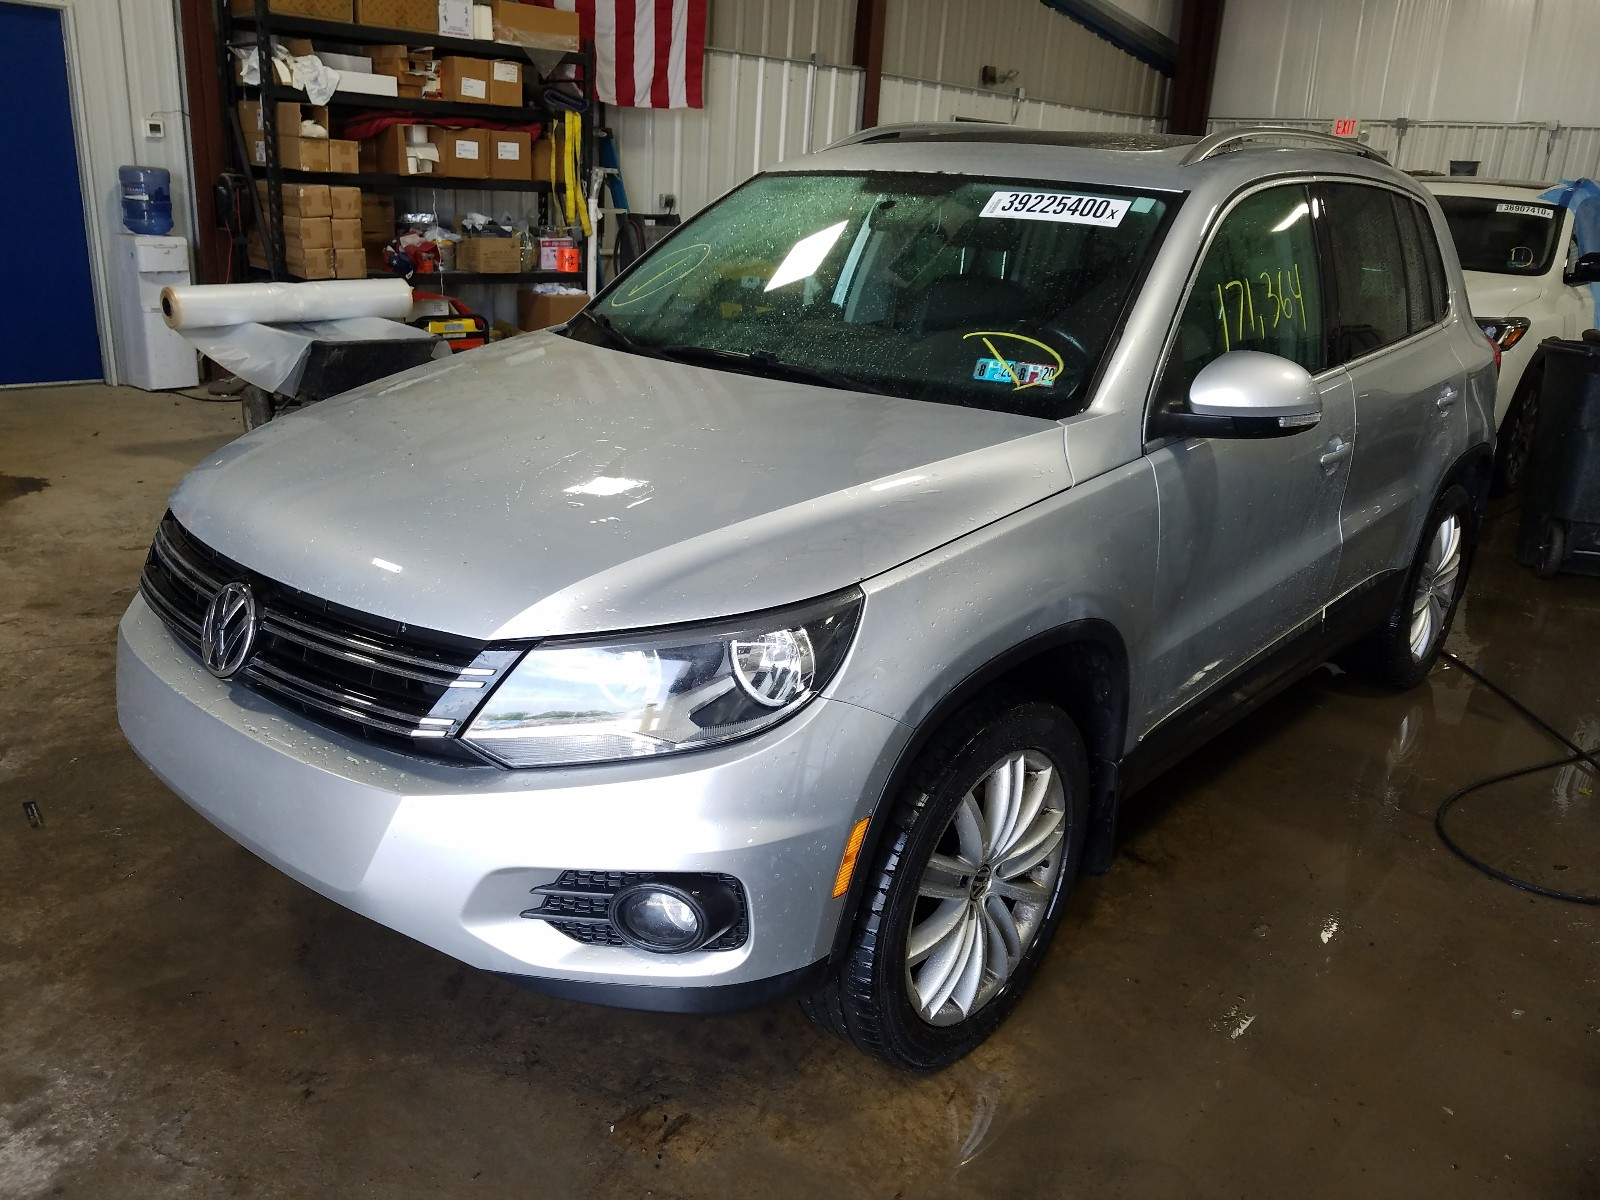 WVGBV3AX3DW567177 - 2013 Volkswagen Tiguan S 2.0L Right View